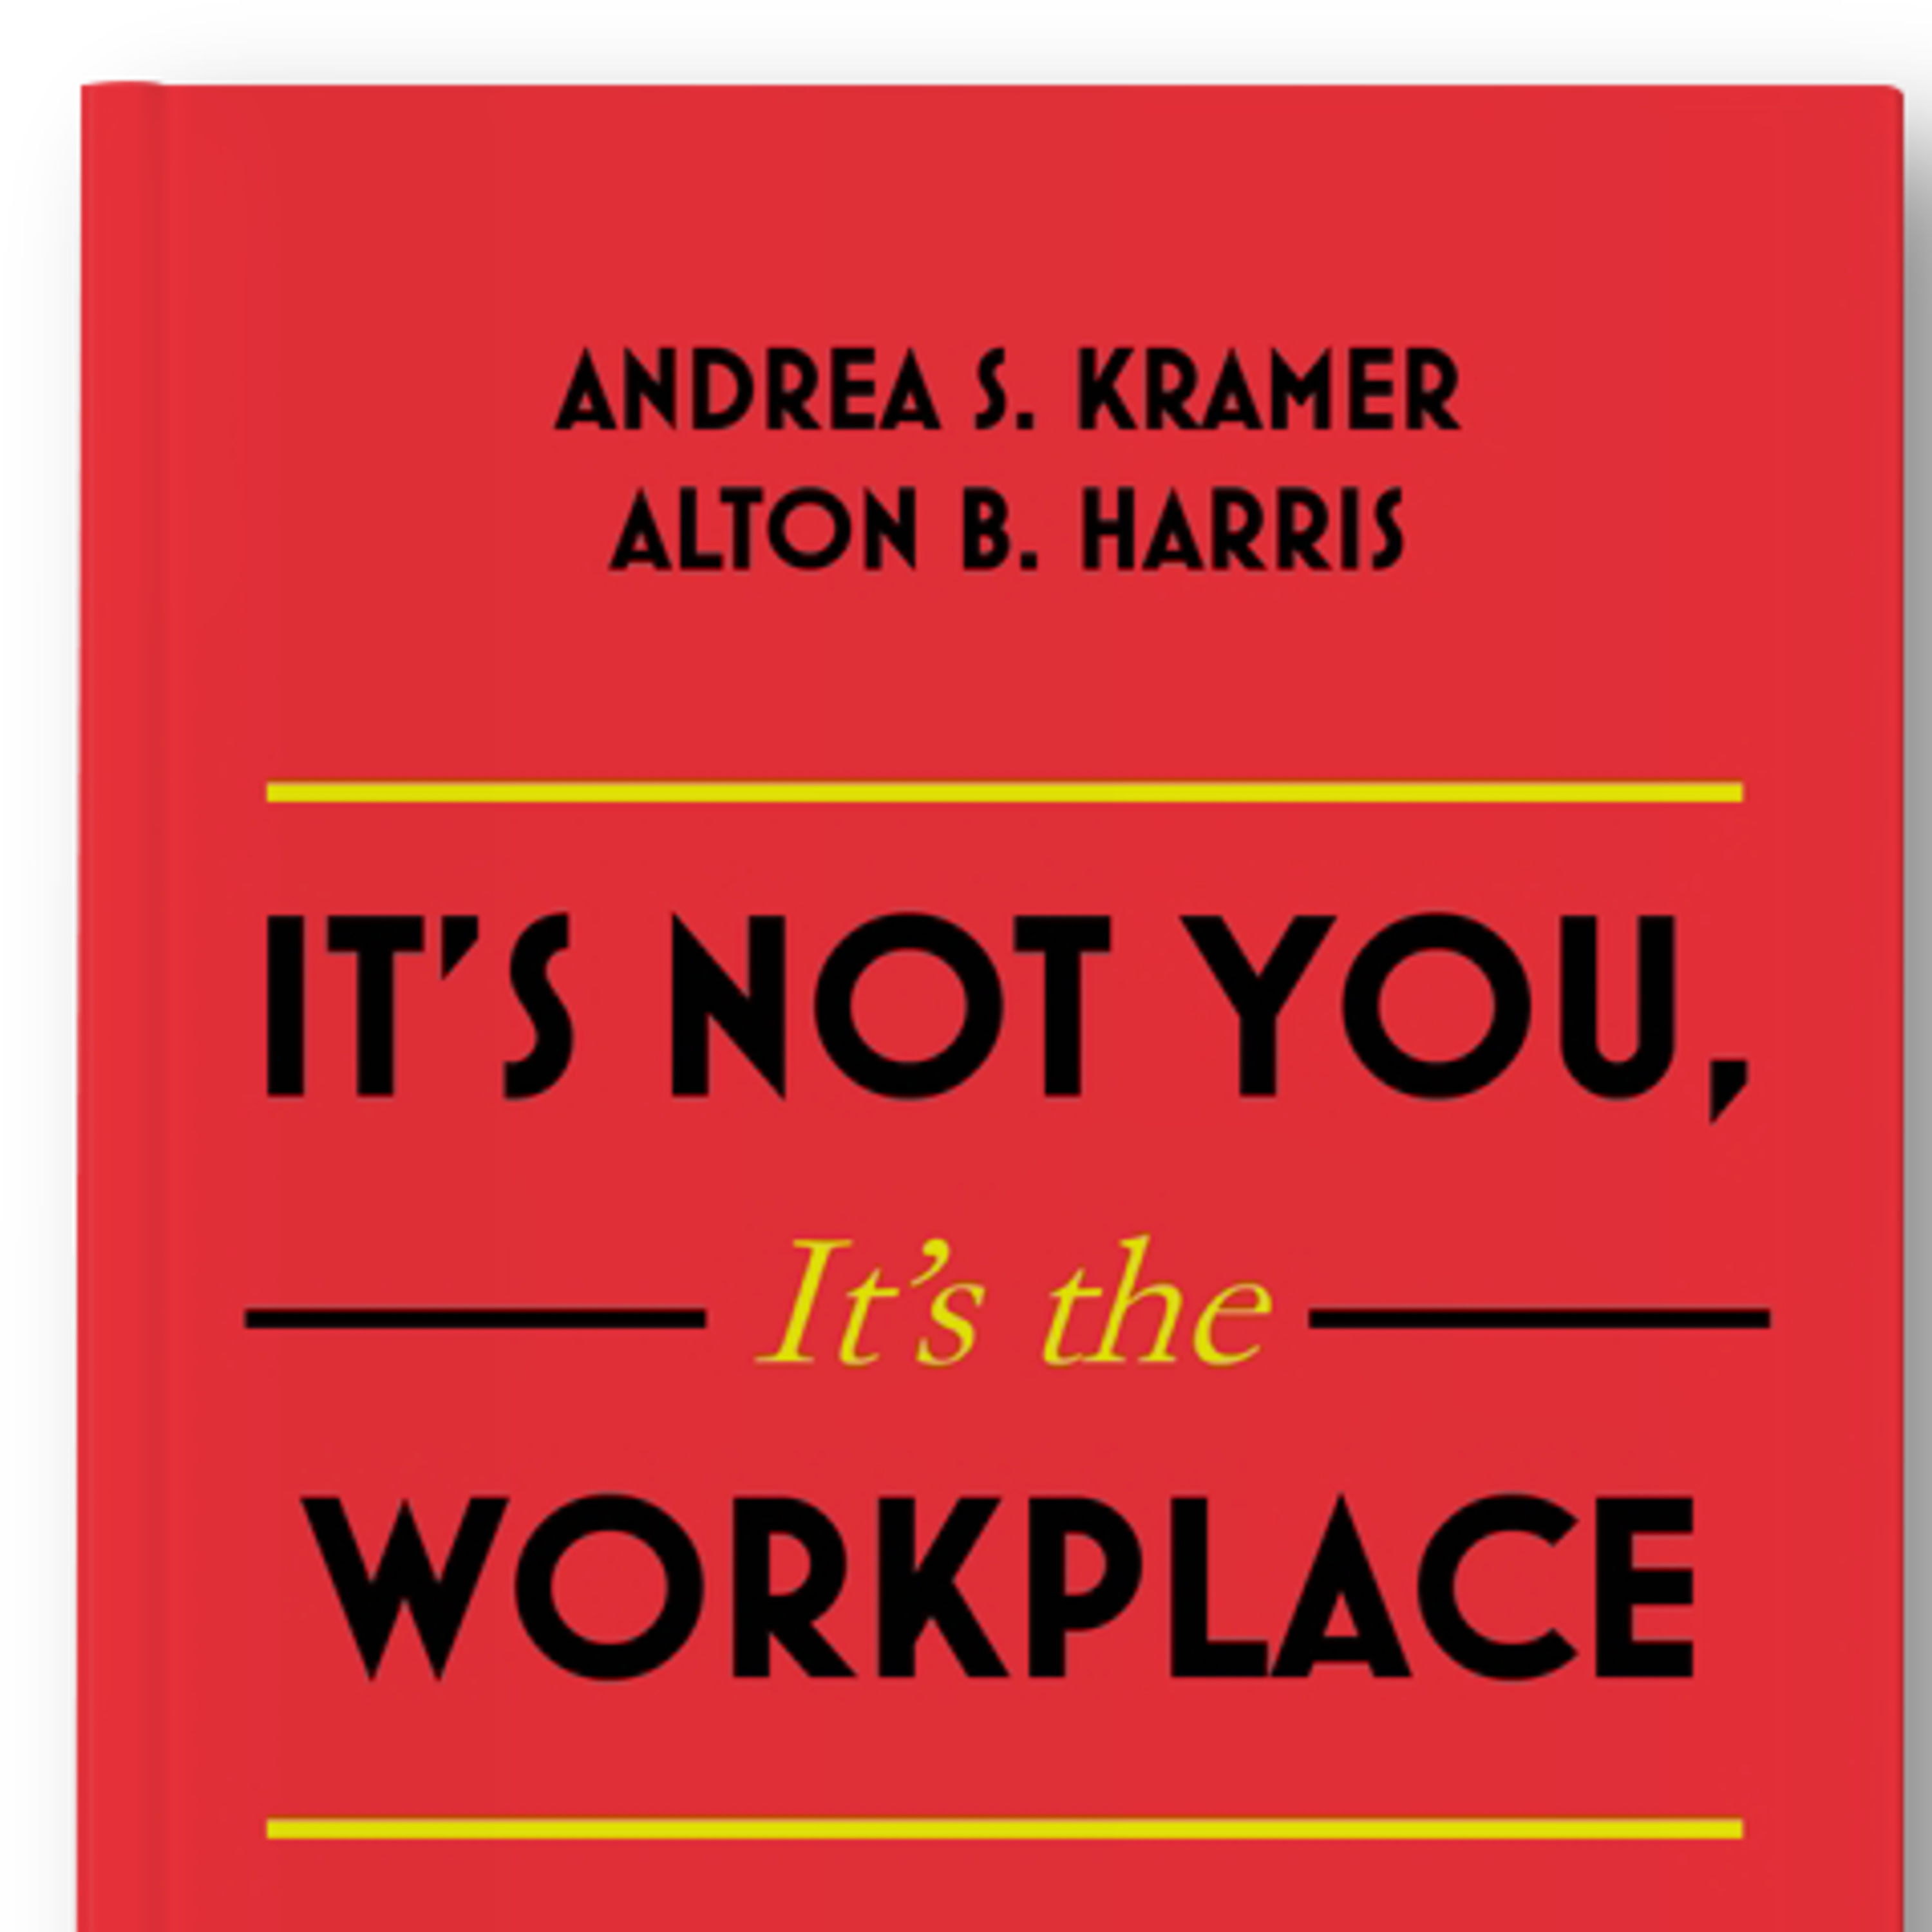 Andie Kramer and Al Harris on Their New Book, It's Not You, It's the Workplace